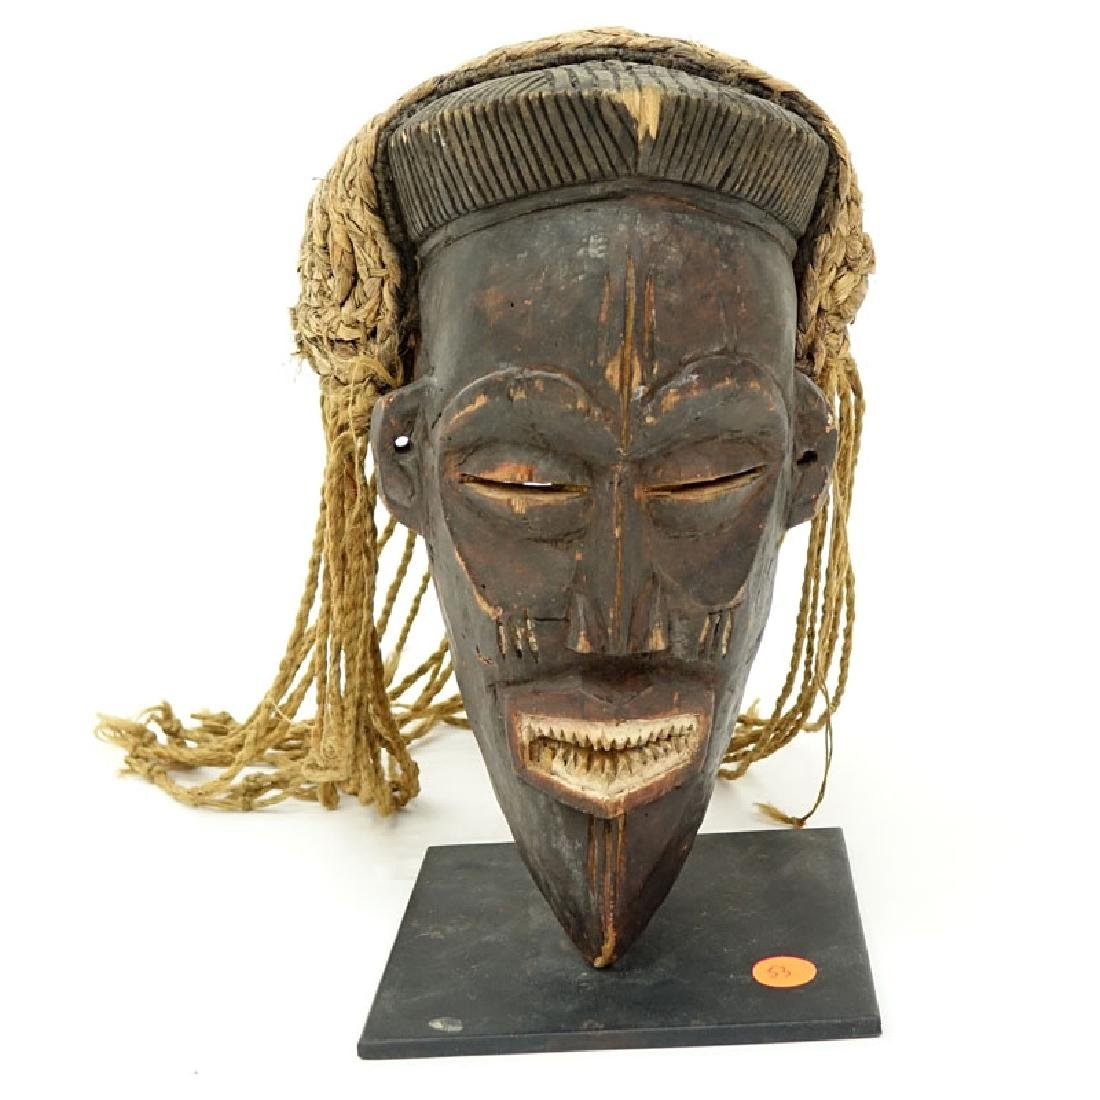 Antique or Later African Chokwe Mask with Headdress on